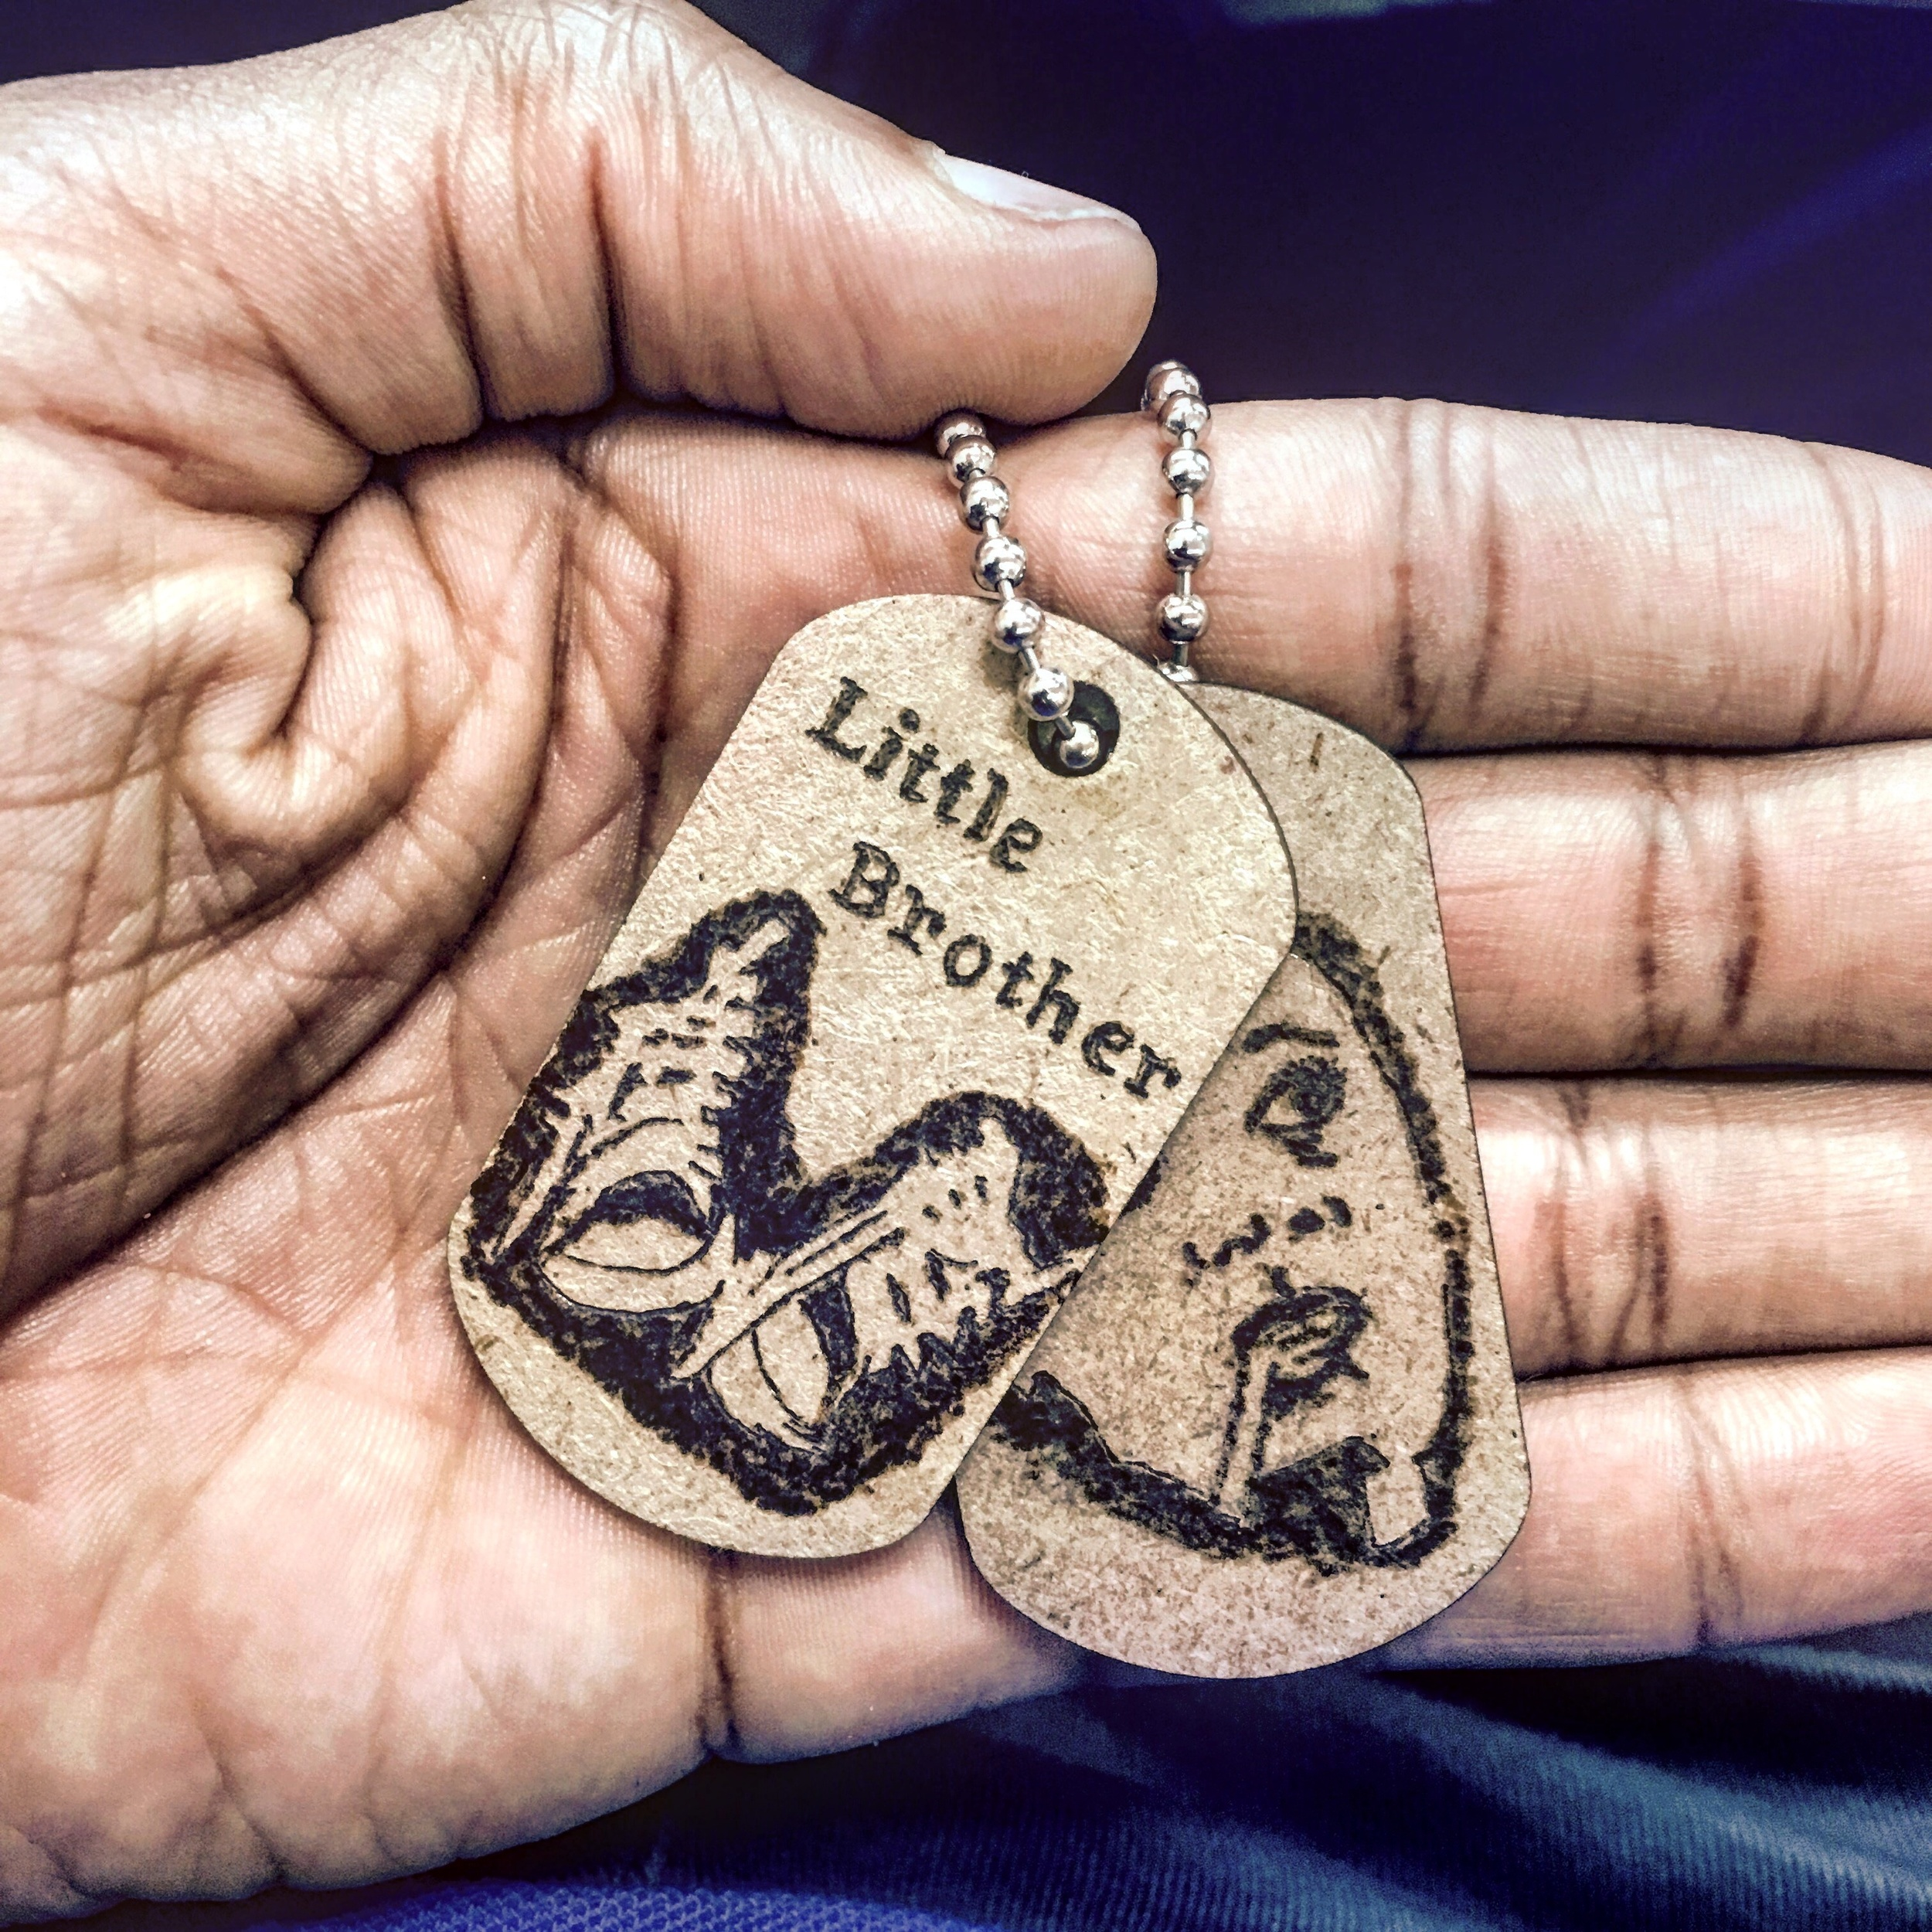 Amb Ambrose WB Hand Holds Dogtags.jpg